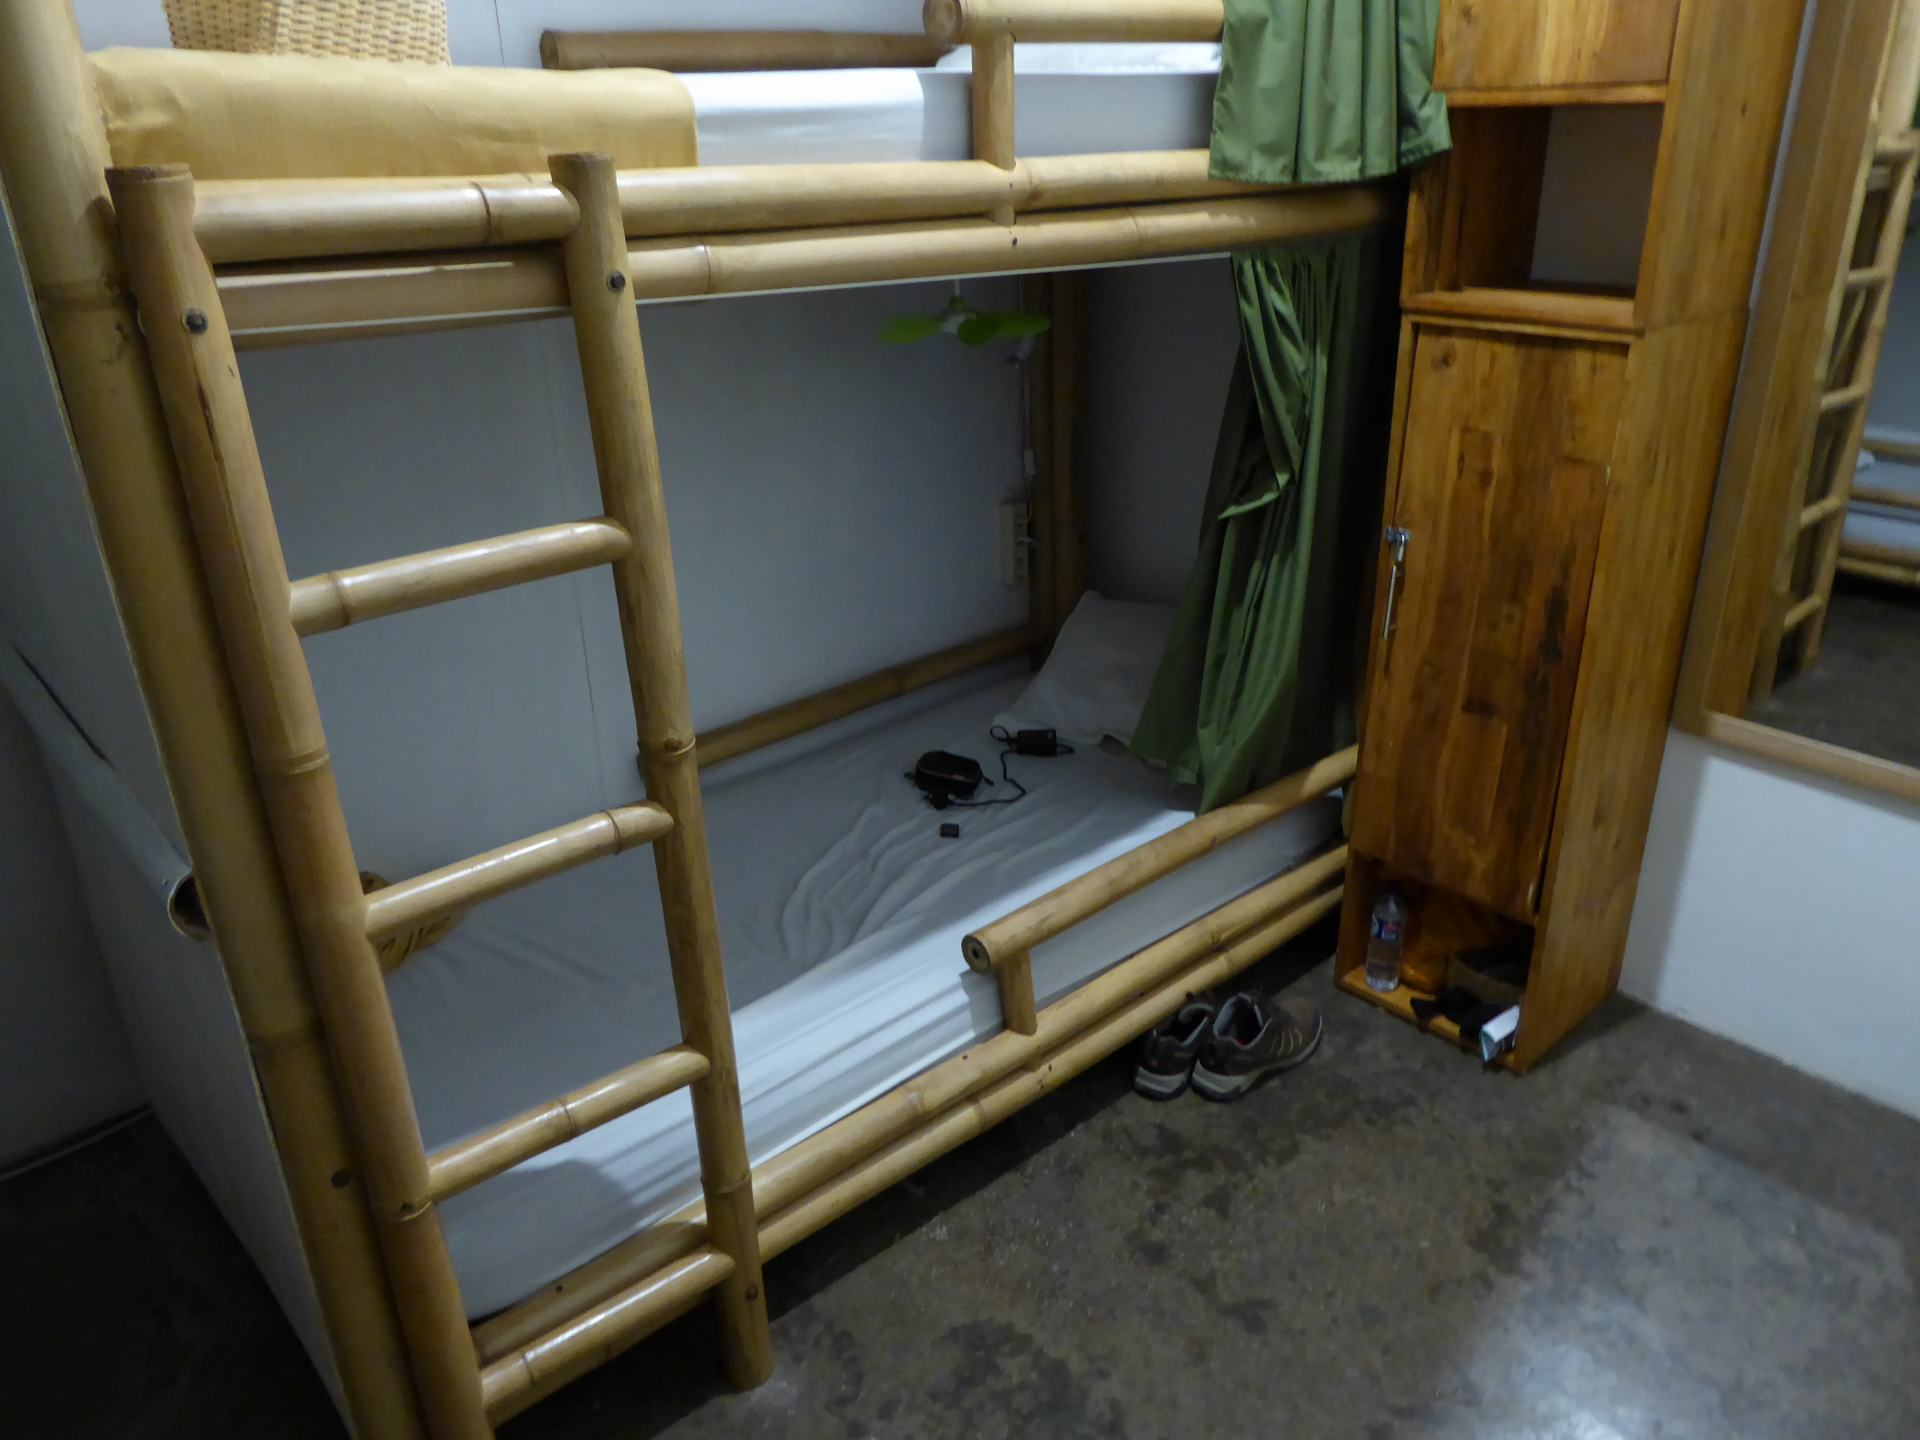 A view of a bottom bun bed in a hostel. A good Southeast Asia backpacking tip is to get sleep in beds with a curtain for privacy, which can be seen in the photo.